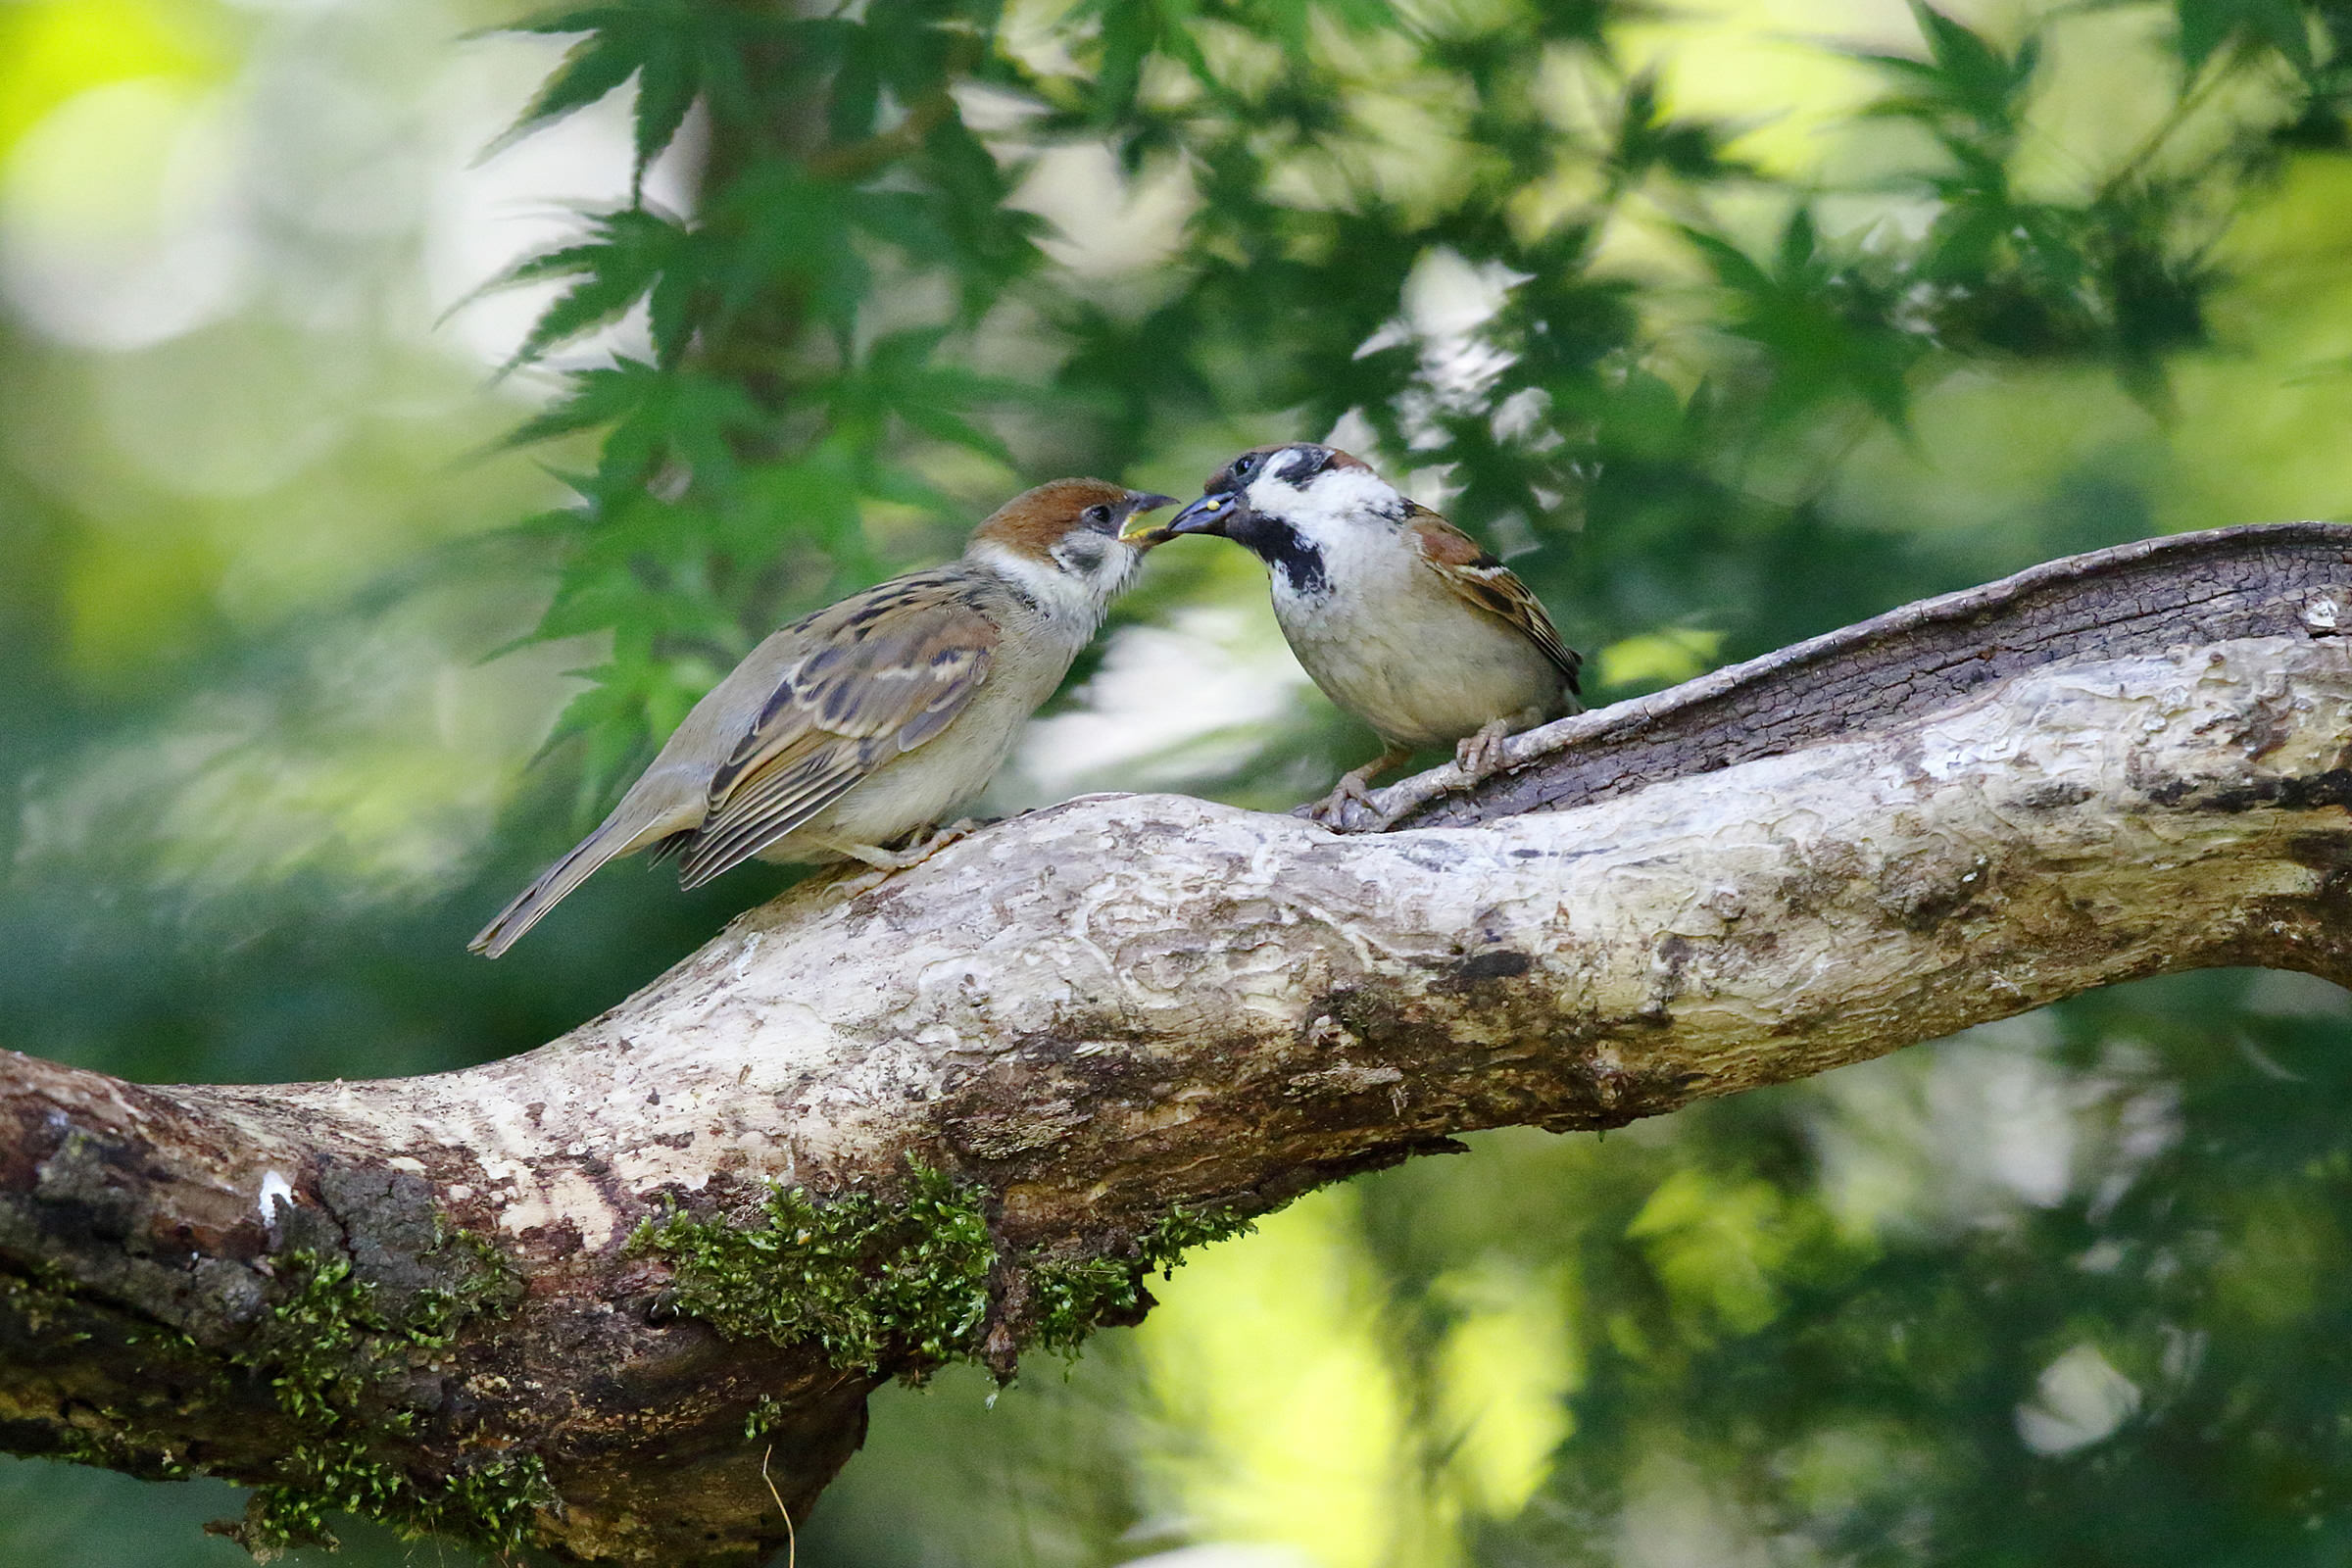 Raising Of Sparrow Pictures : of sparrows has caused some concern one reason may be the decline of ...